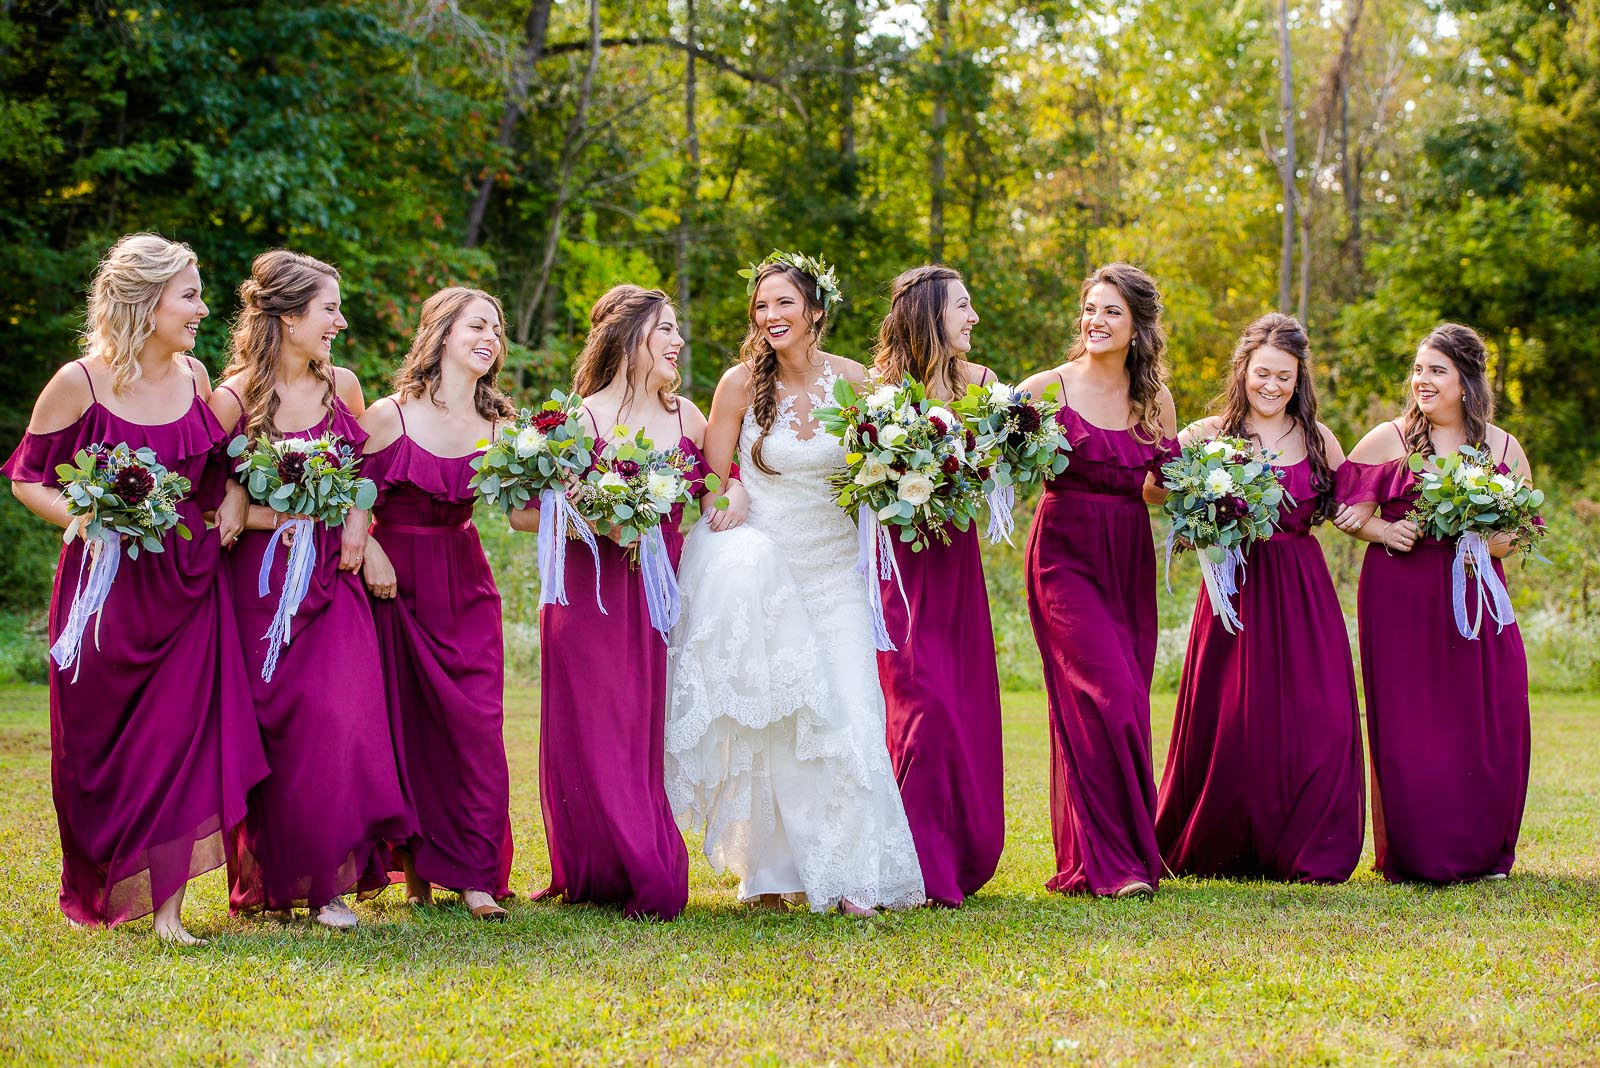 Eric_and_Christy_Photography_Blog_Stephanie_Nick_Wedding-32